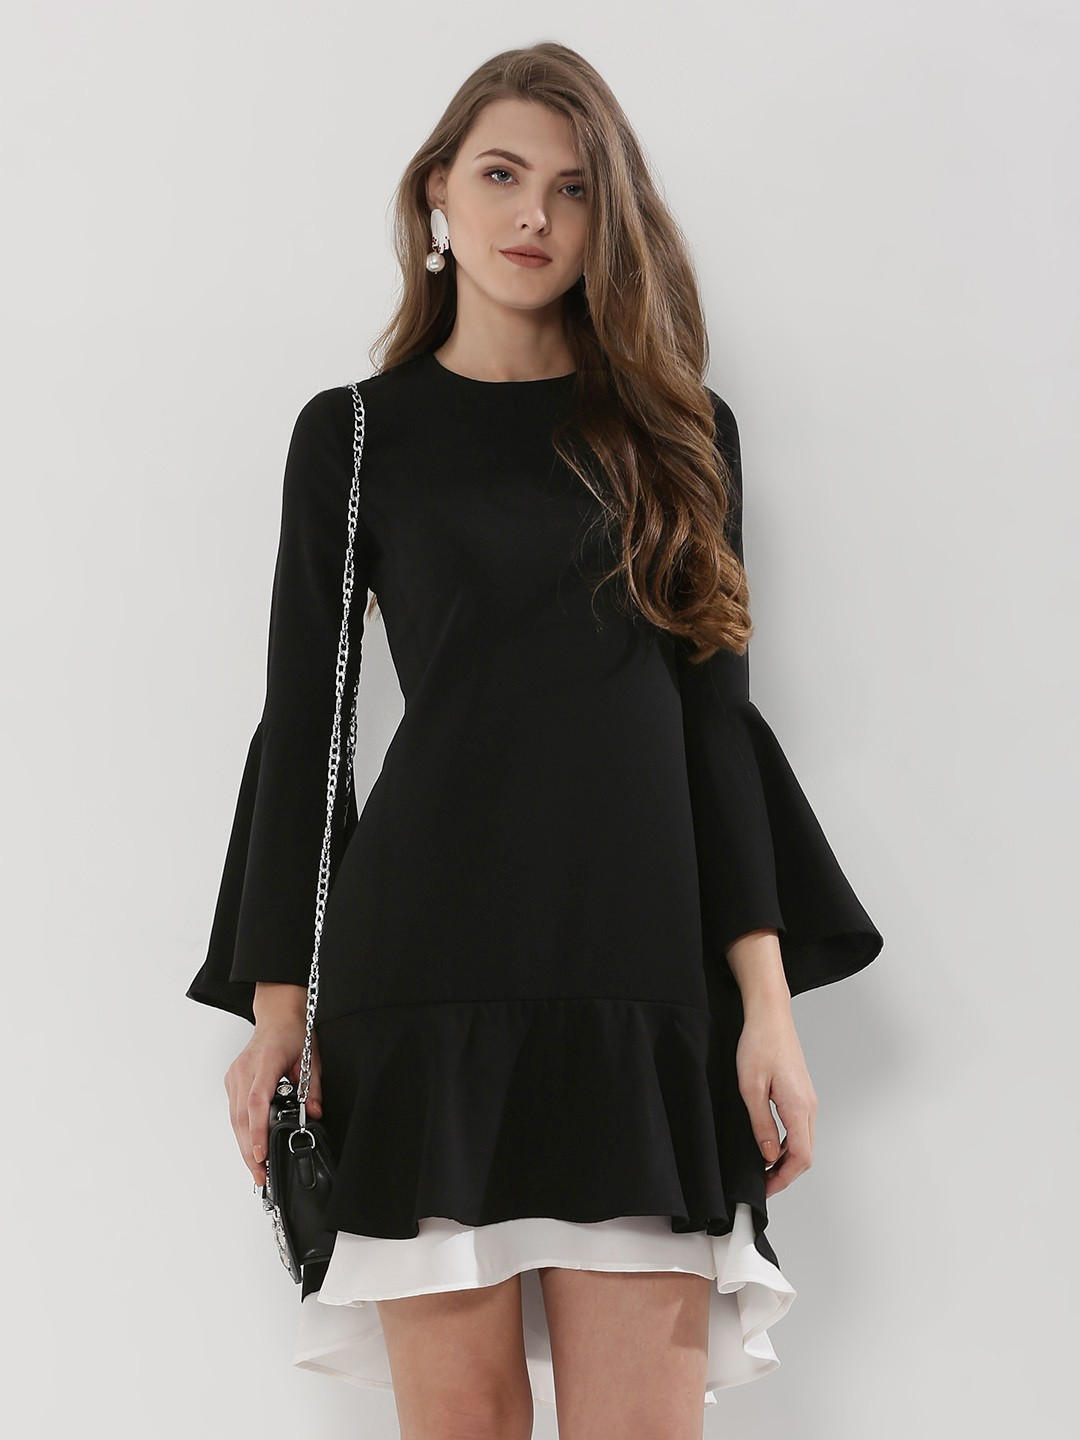 4- fashion trends- bell sleeves